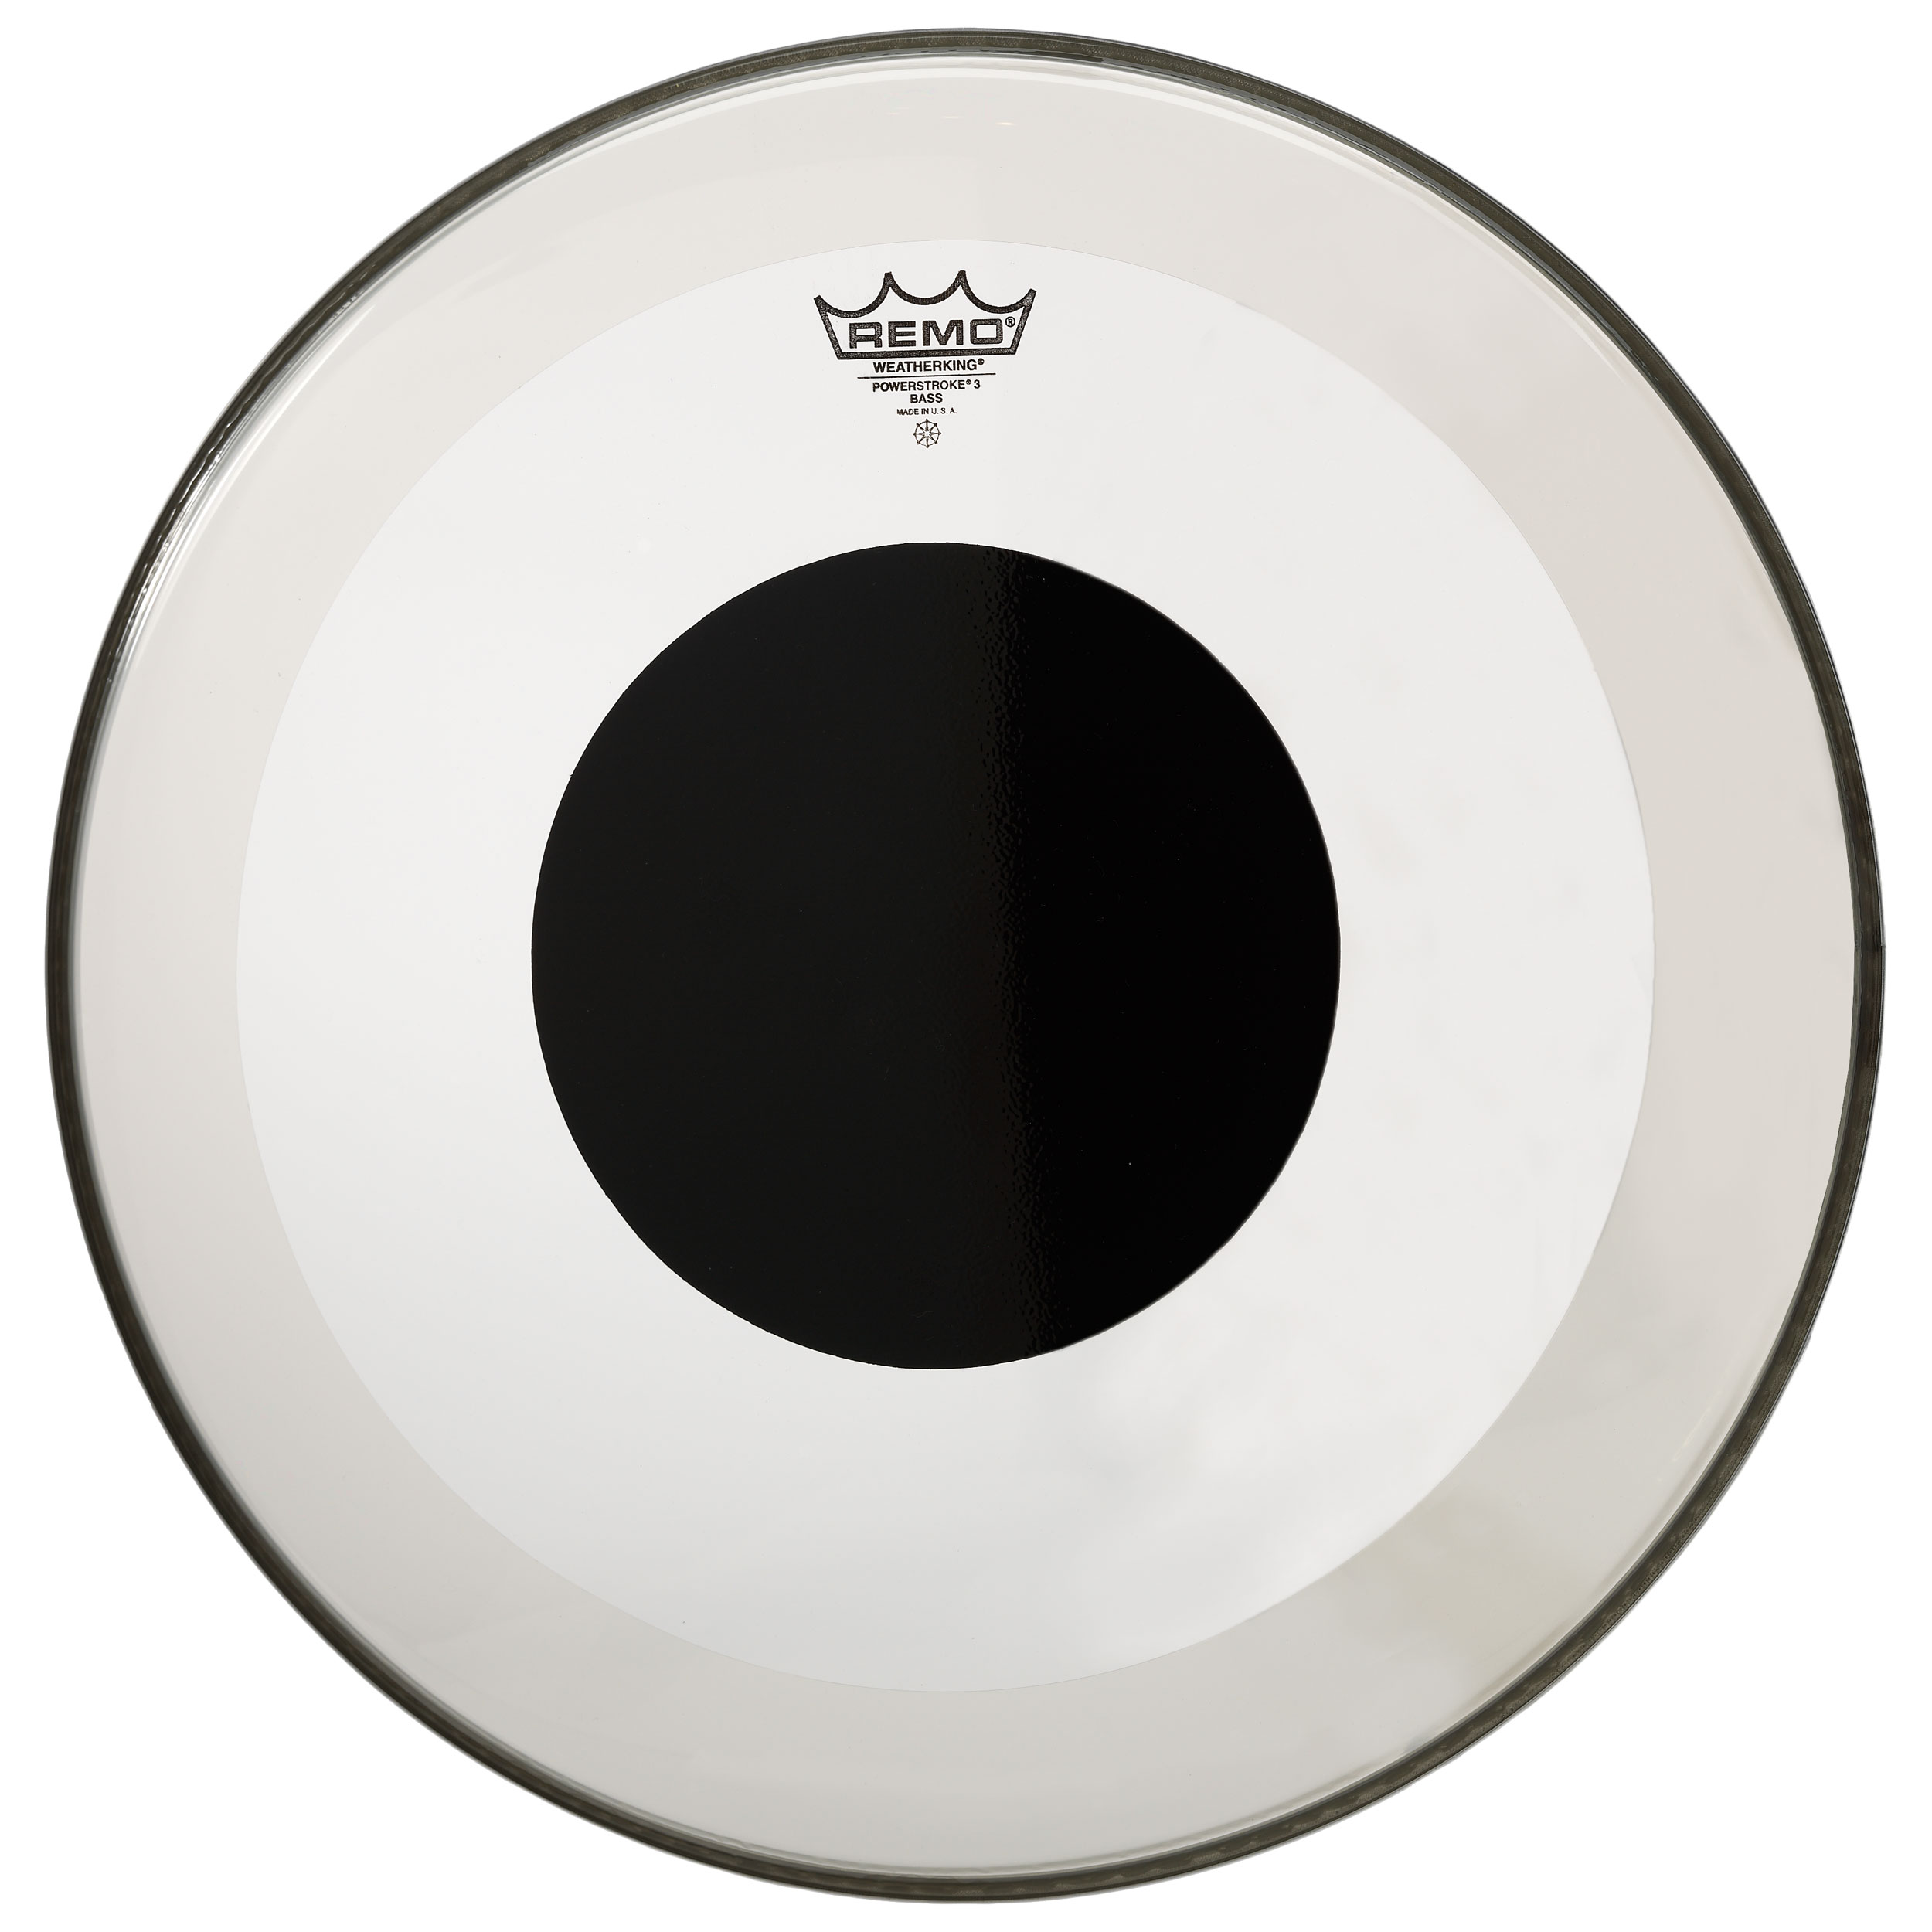 "Remo 6"" Controlled Sound Clear Drum Head with Black Dot"